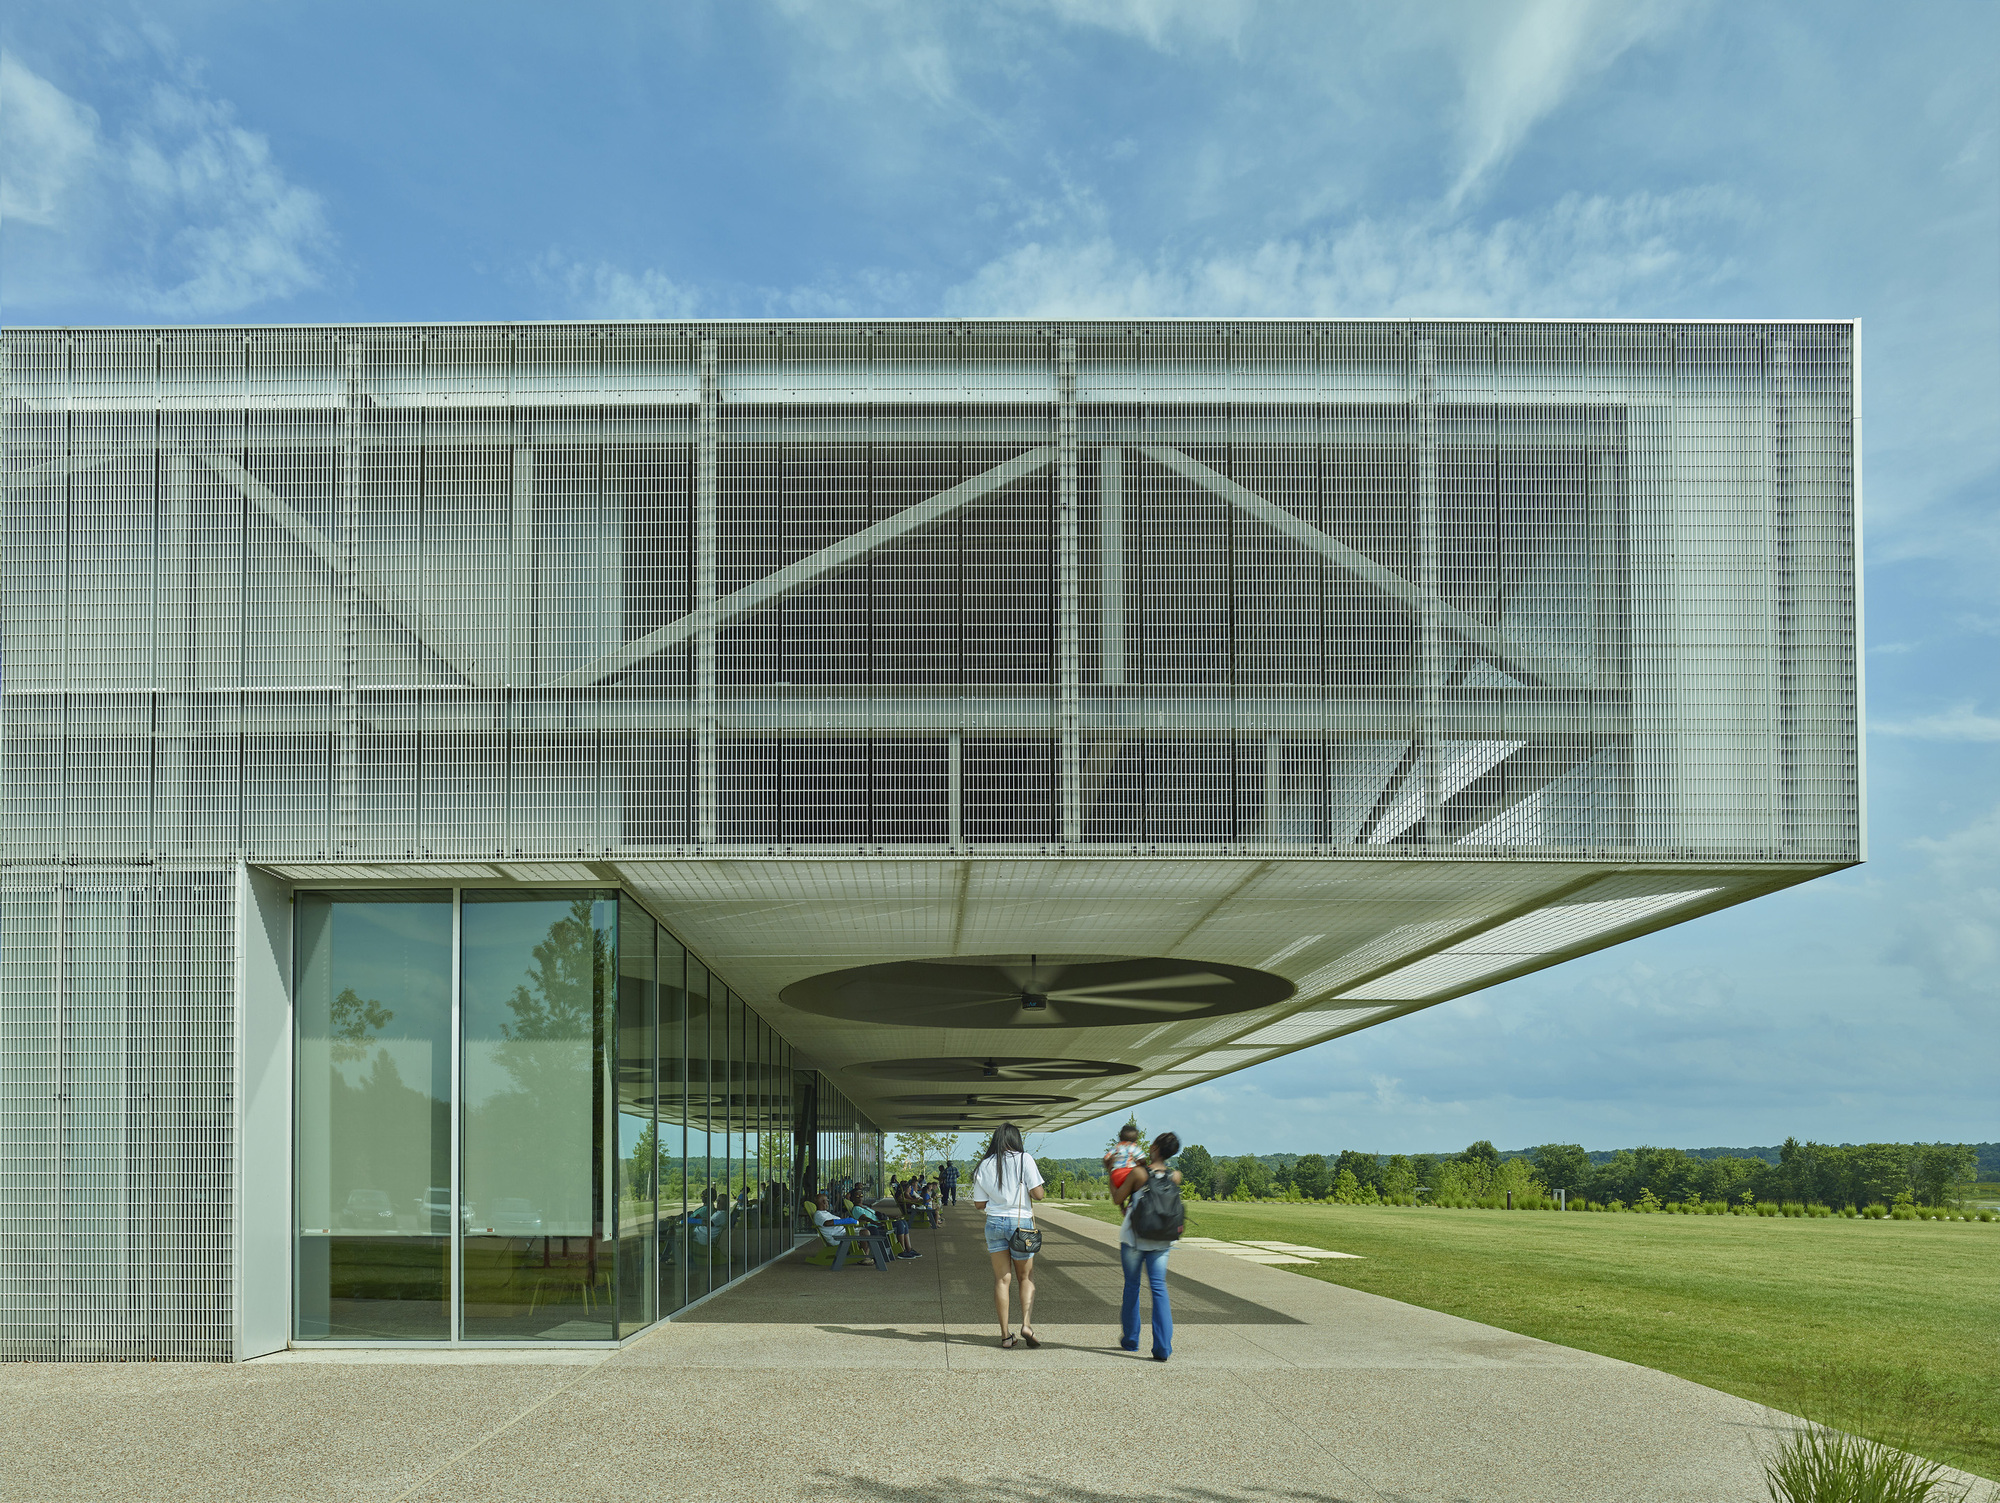 Heart of the Park Buildings at Shelby Farms Park / Marlon Blackwell Architect + James Corner Field Operations